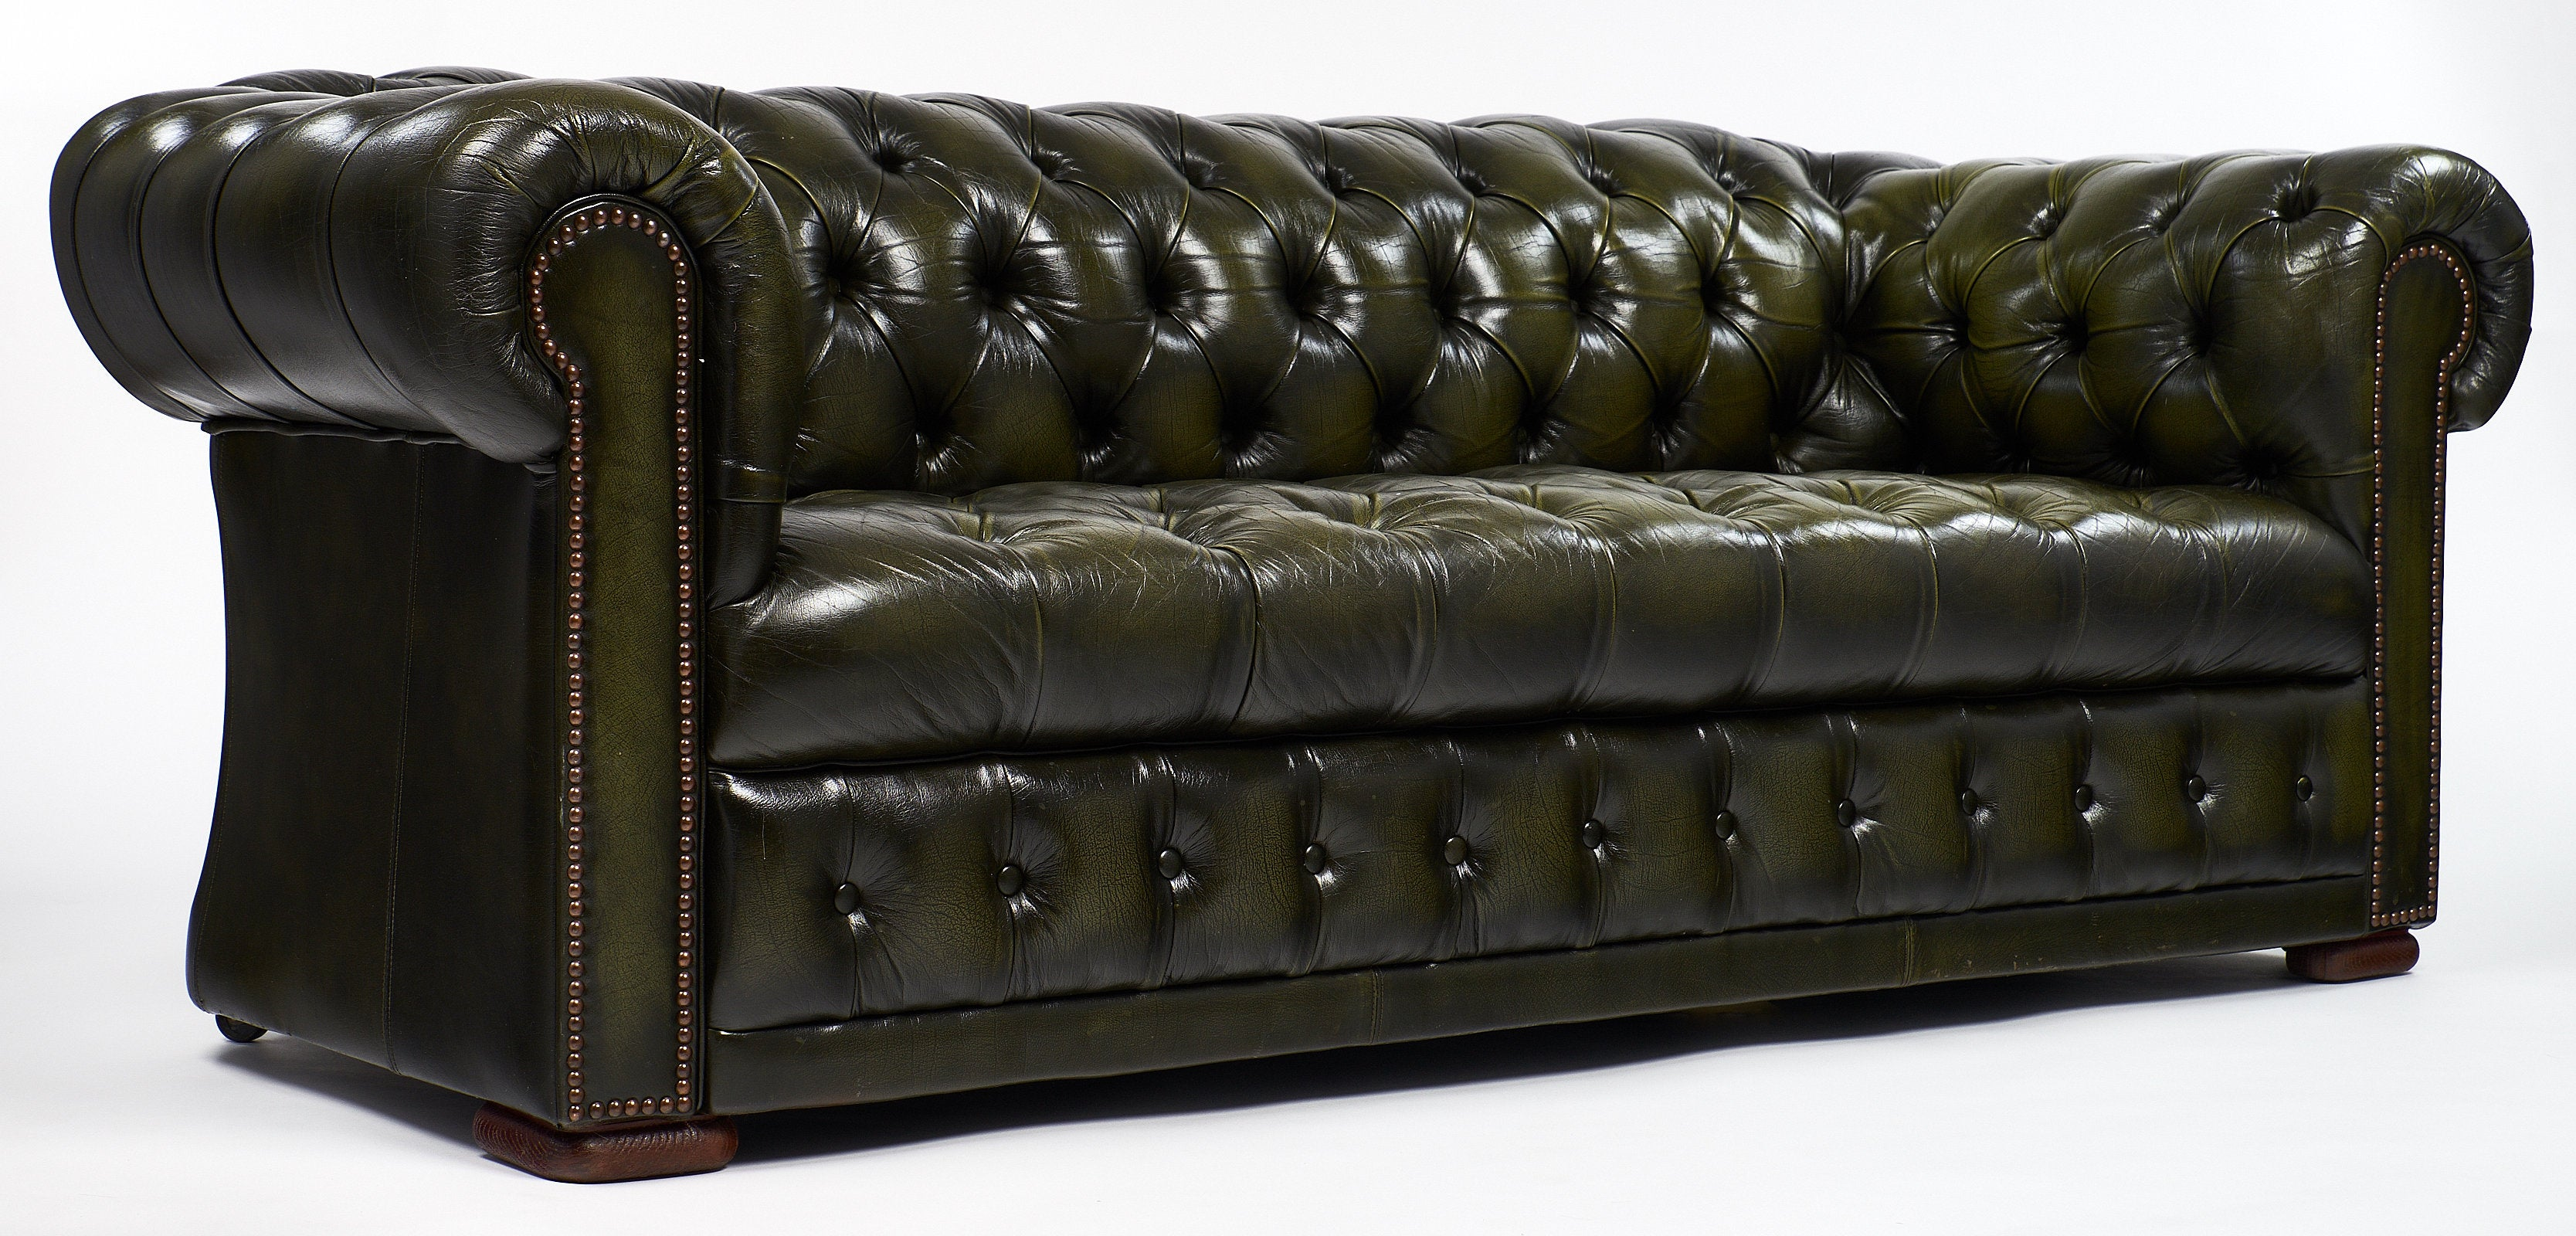 Green Leather Vintage Chesterfield Sofa